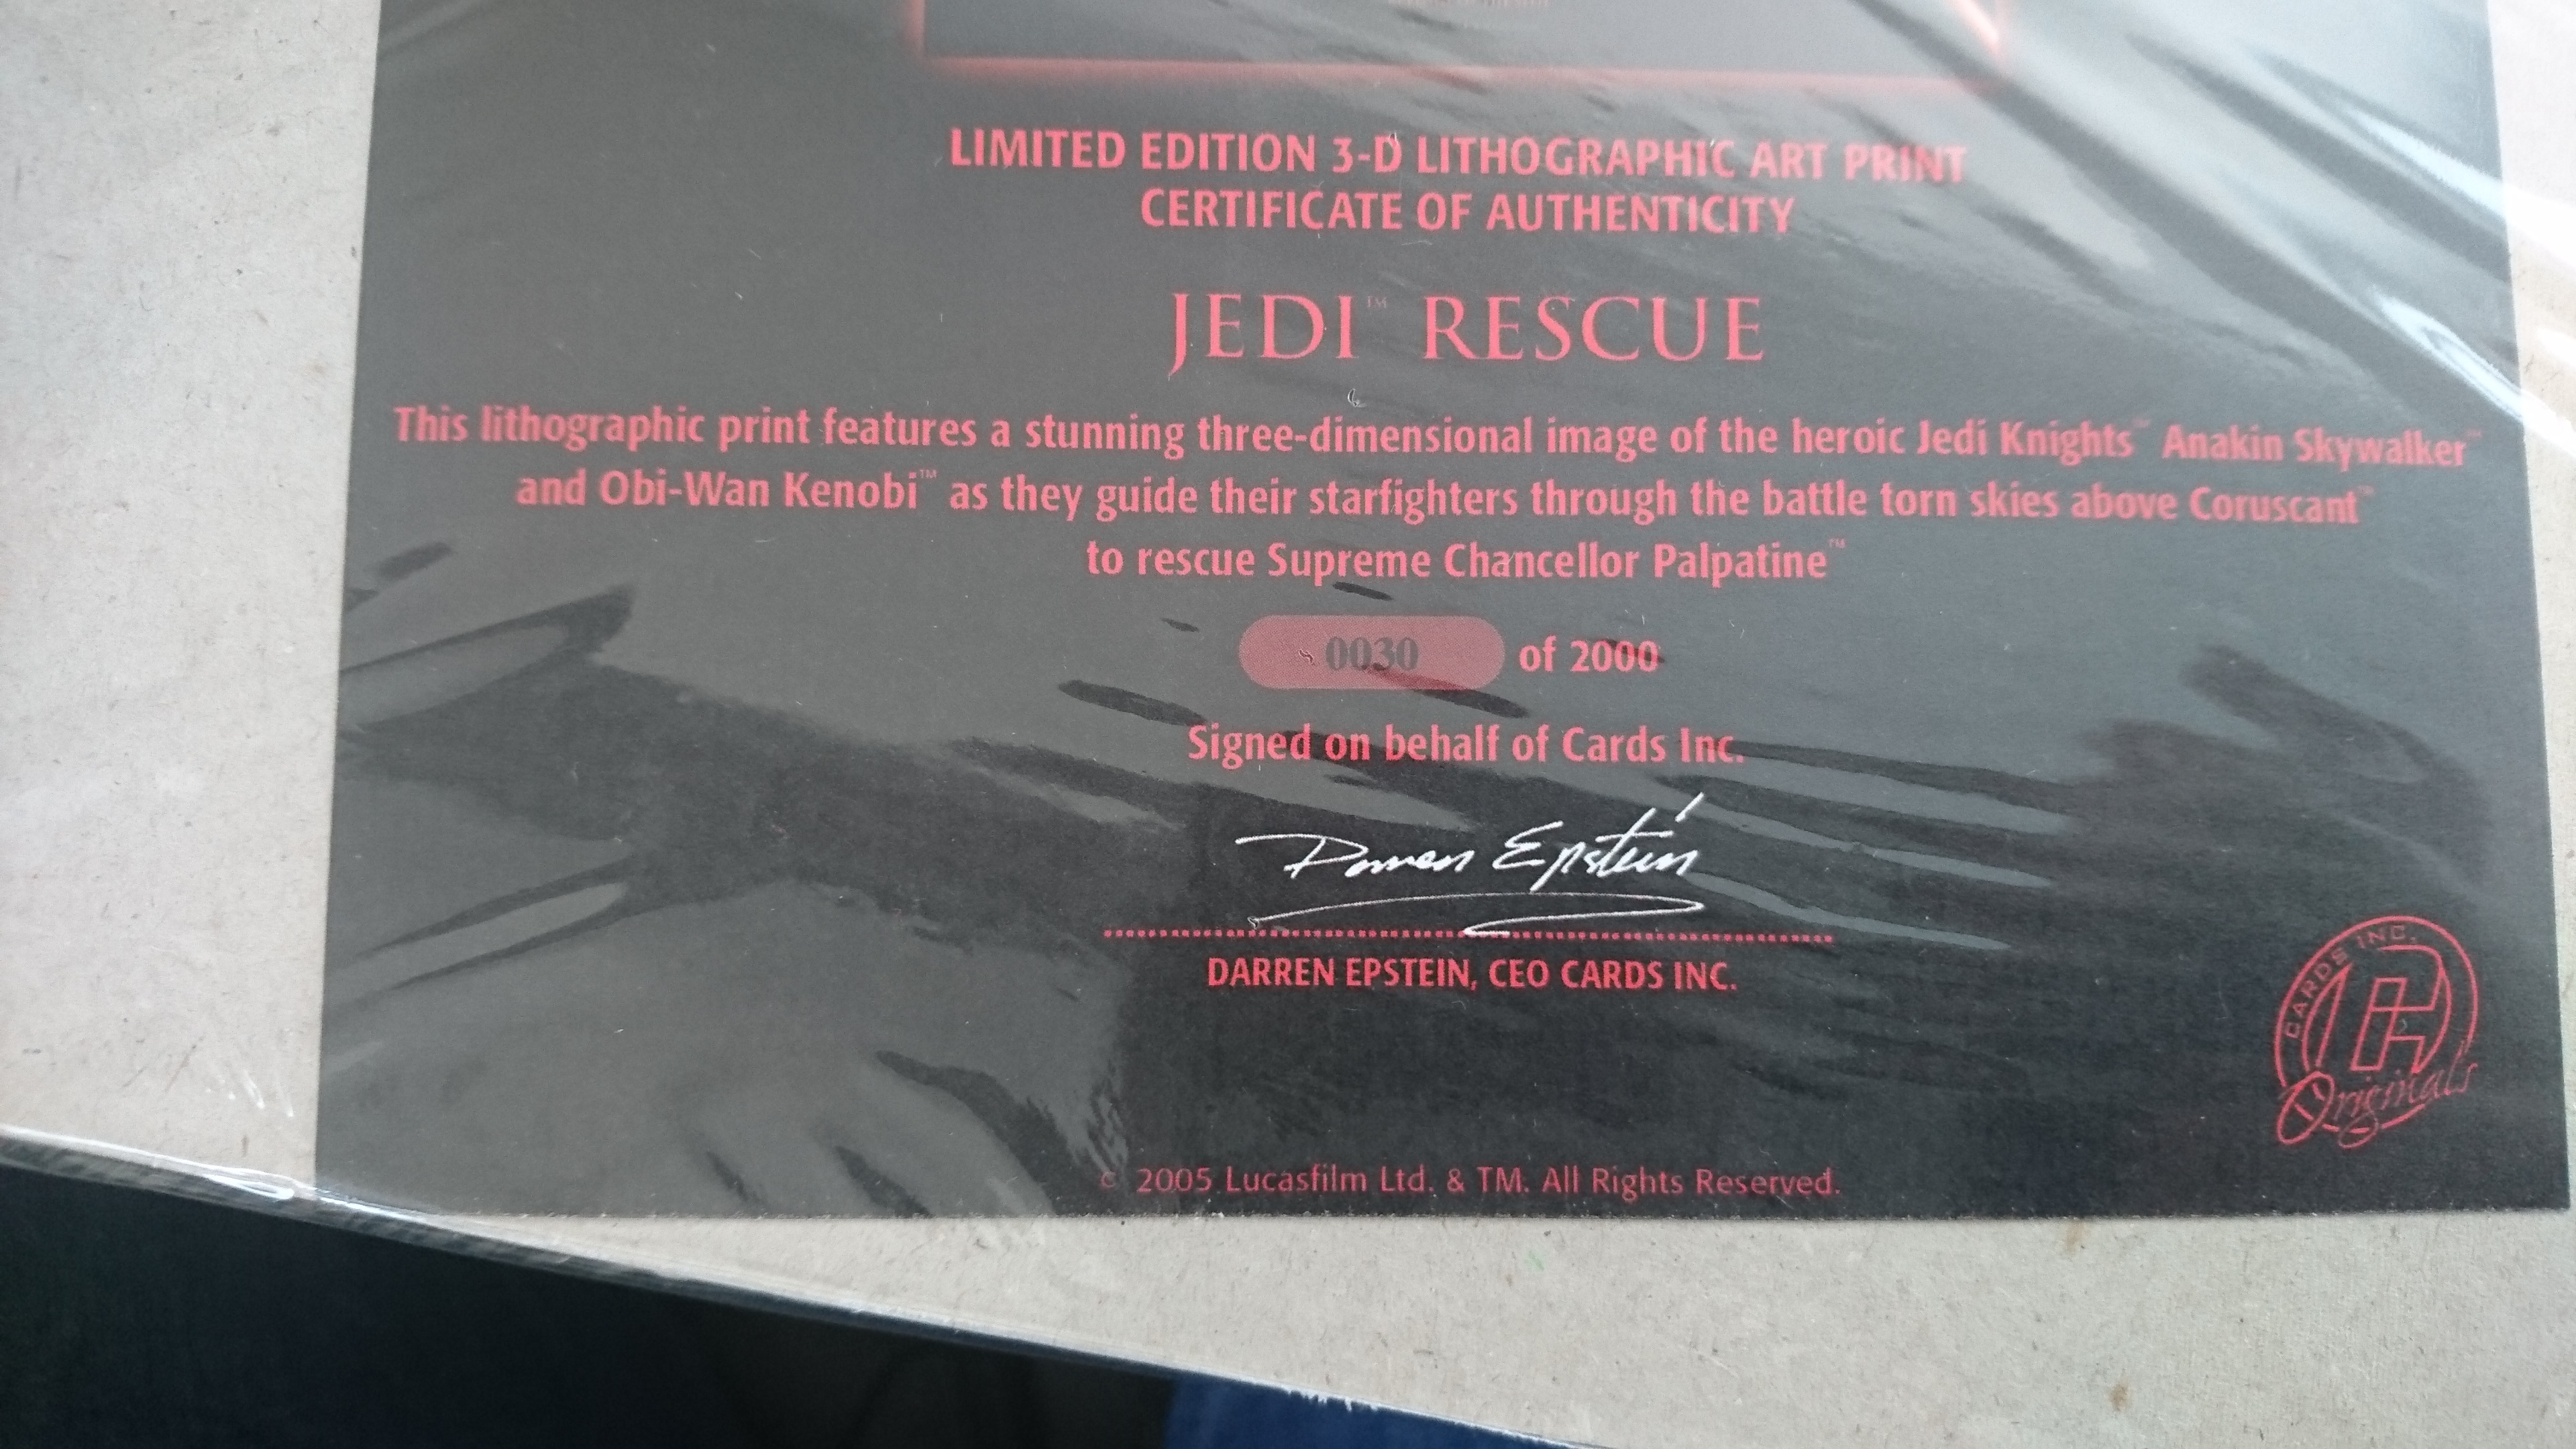 limited edition print certificate of authenticity template - limited edition star wars 3d lithographic print with